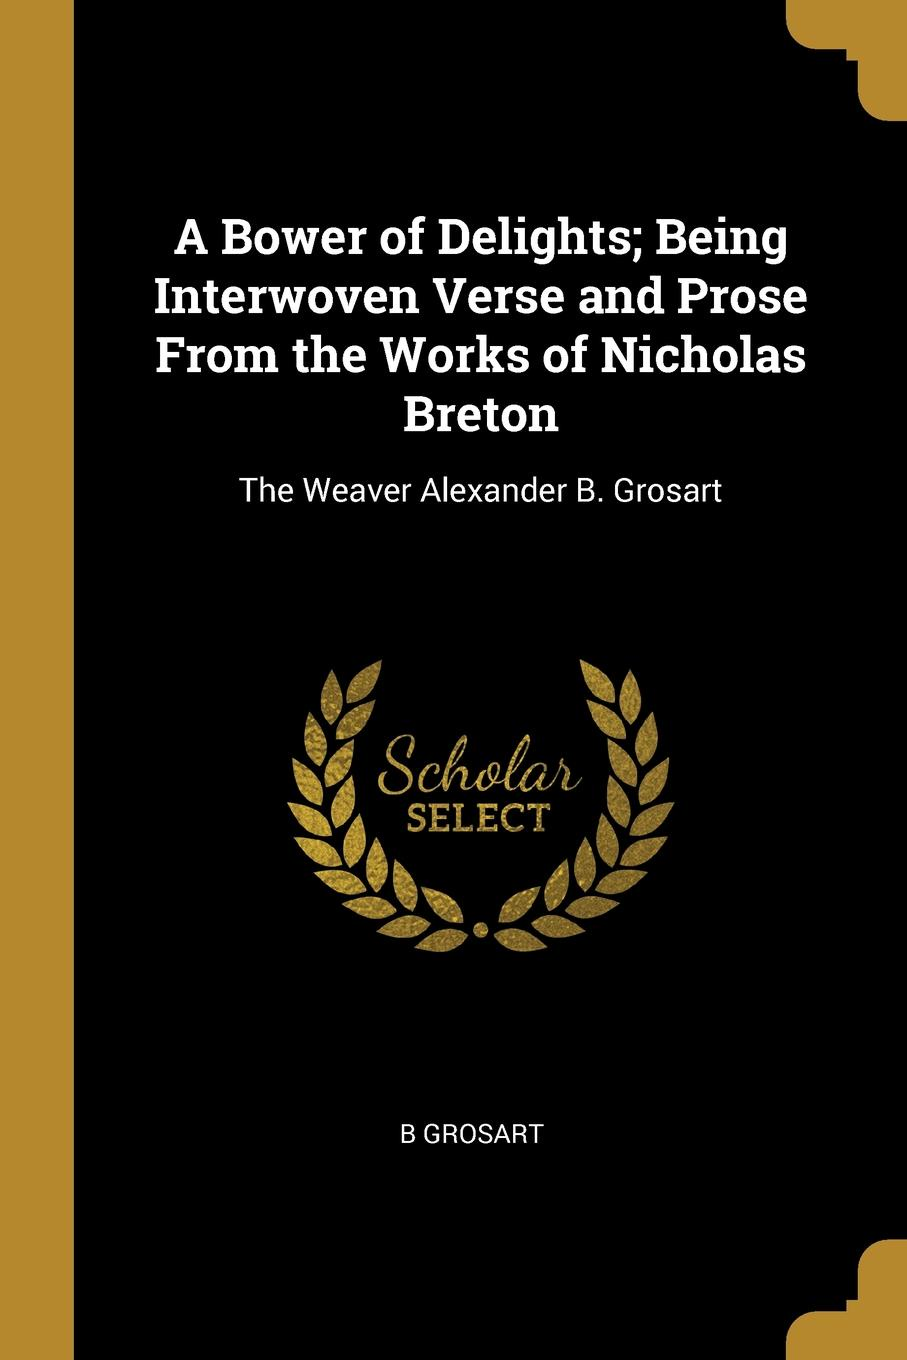 B Grosart A Bower of Delights; Being Interwoven Verse and Prose From the Works of Nicholas Breton. The Weaver Alexander B. Grosart